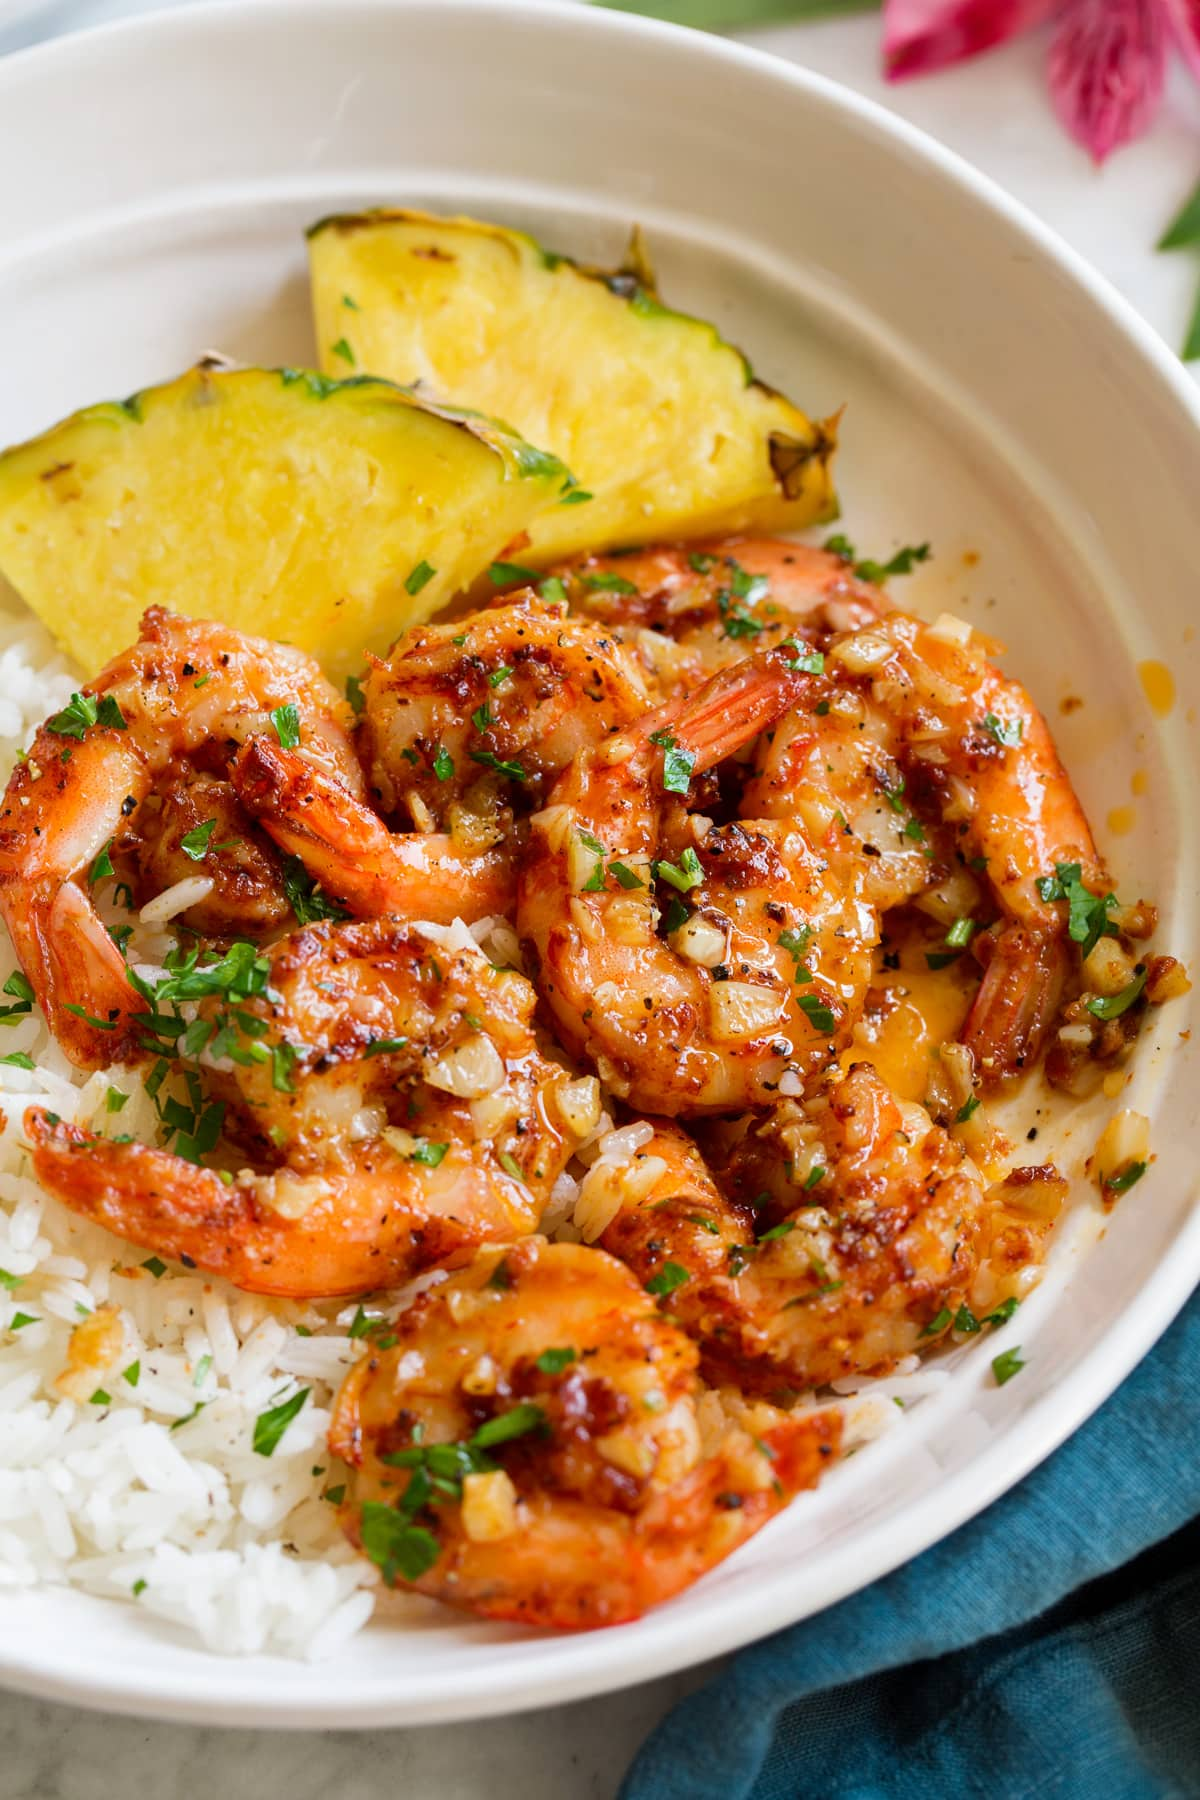 Close up image of Hawaiian garlic shrimp served over white rice with slices of fresh pineapple.